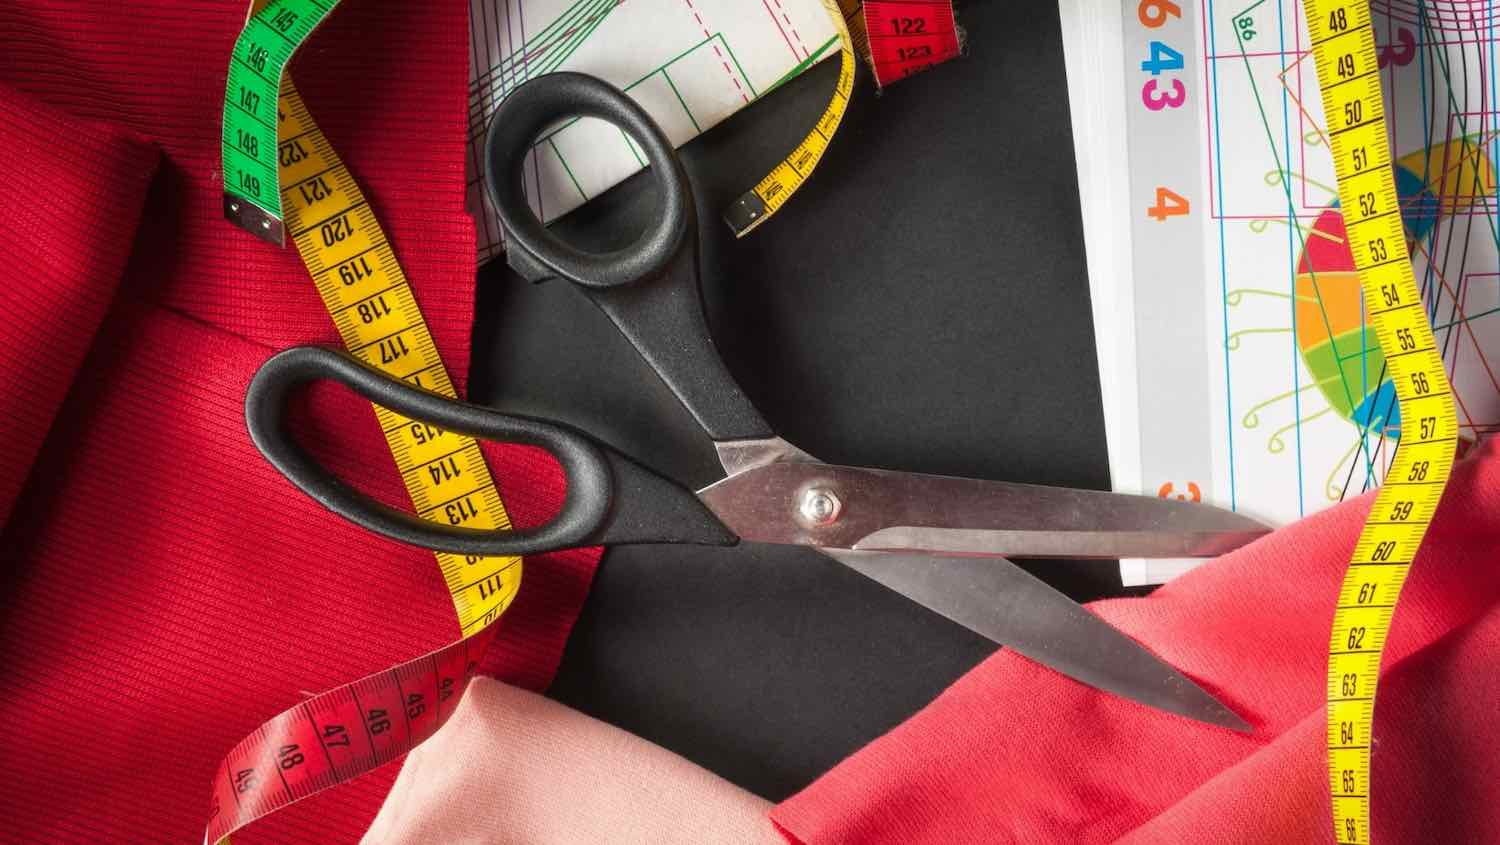 the best sewing scissors to cut with